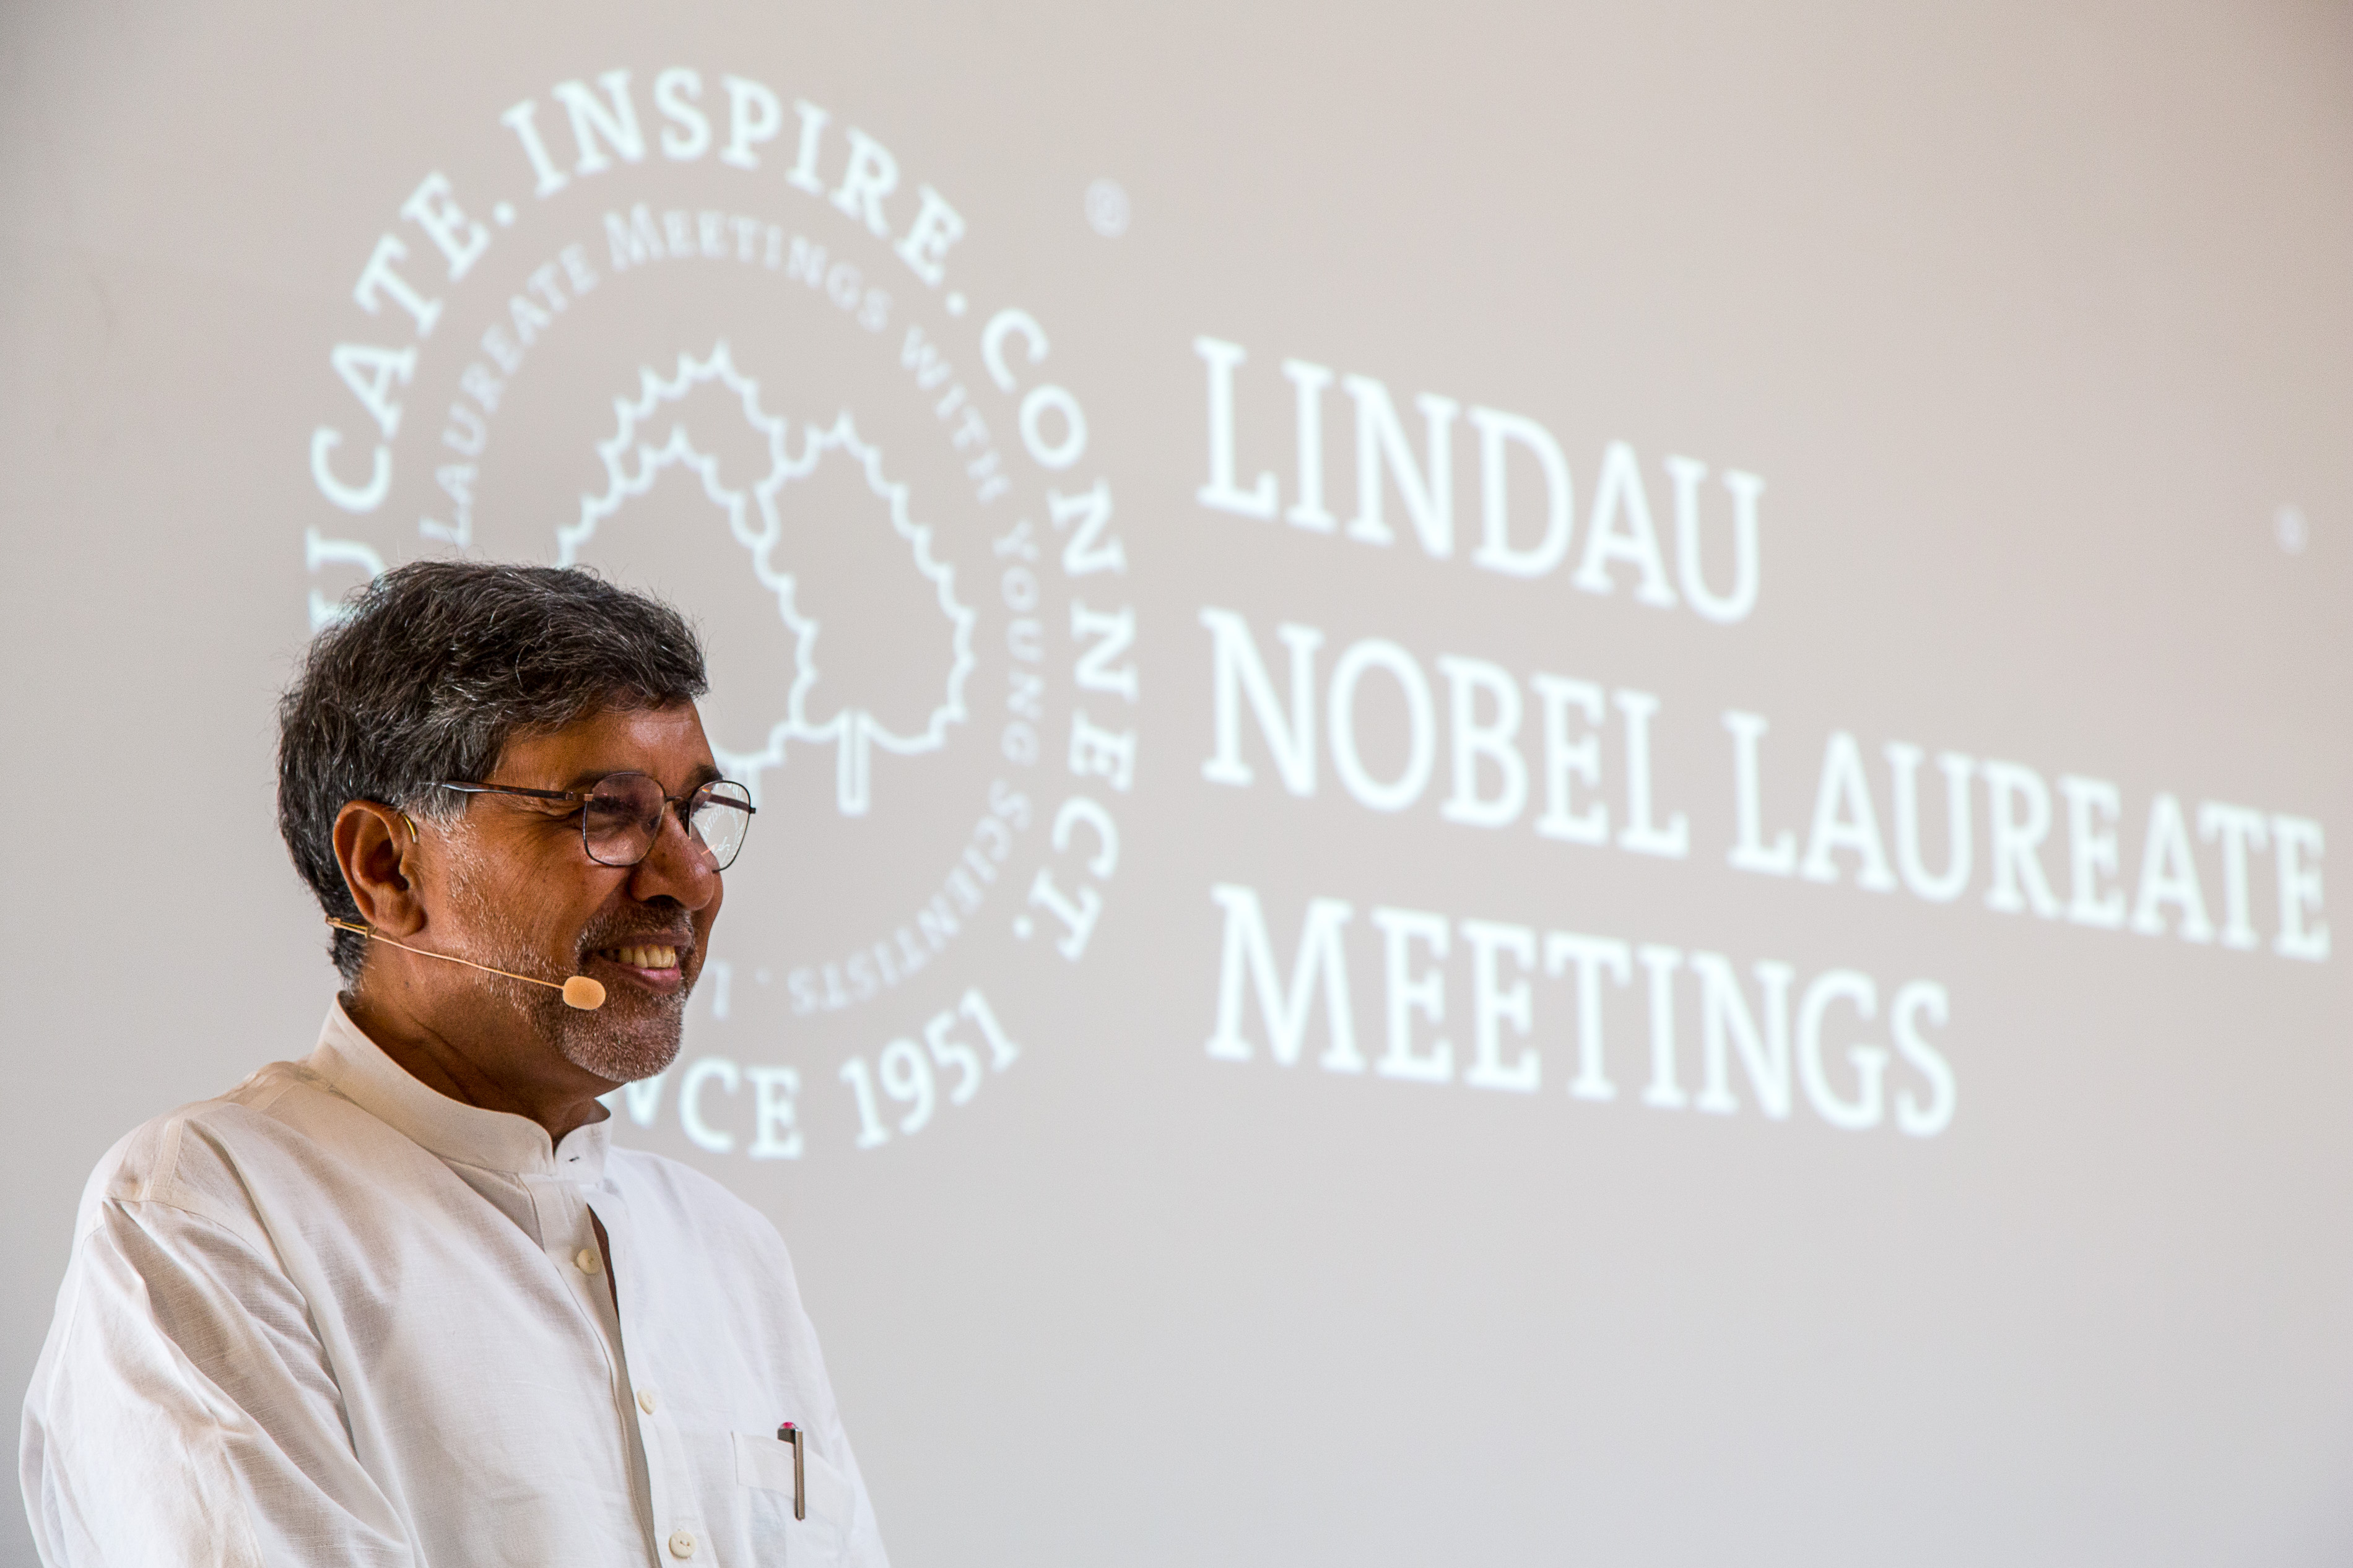 Image: Christian Flemming/Lindau Nobel Laureate Meetings